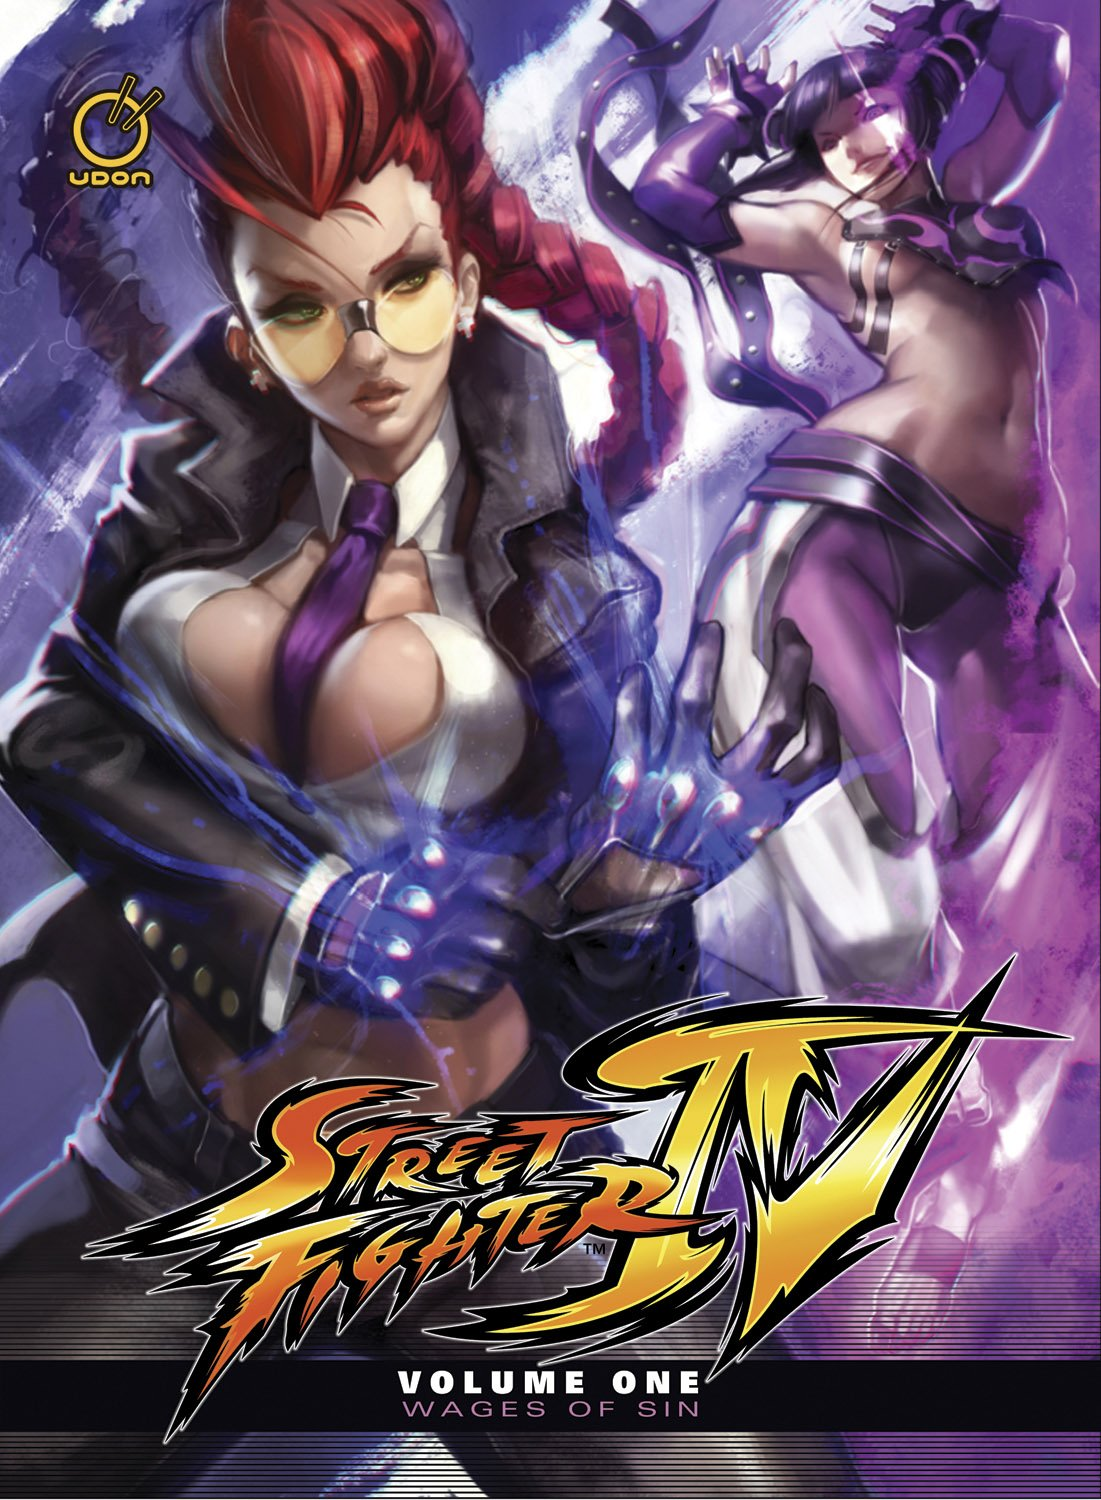 Street Fighter IV Vol.1 Wages of Sin